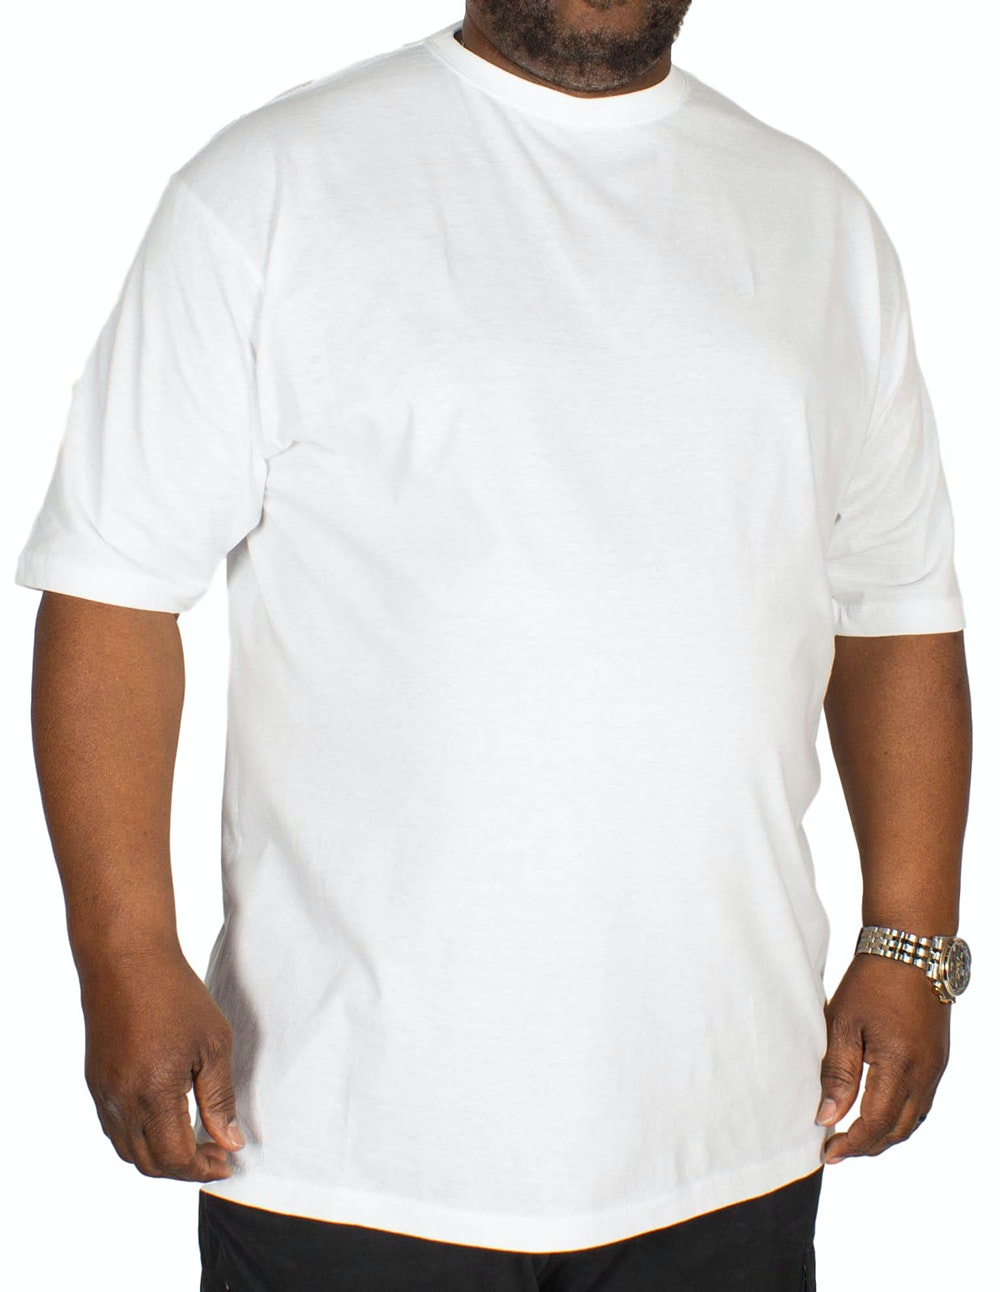 Carabou Plain Crew Neck T-Shirt White